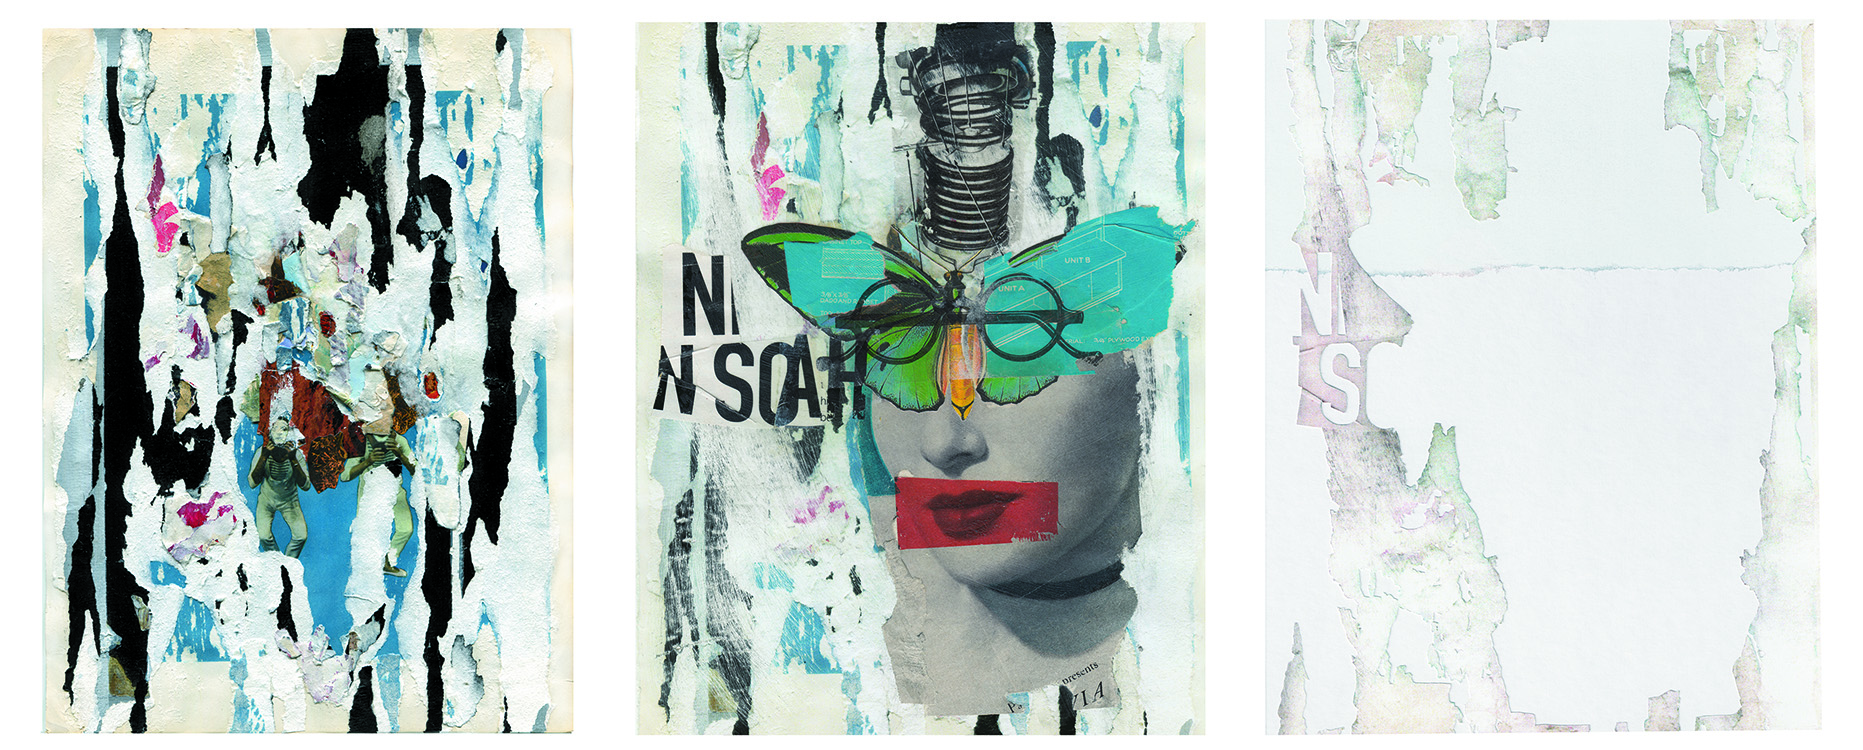 From left to right:  Untitled 09,  Issue 1, Andrea Burgay;  Masque , Issue 2, Allan Bealy;  Untitled,  Issue 3, Rubén Frejo